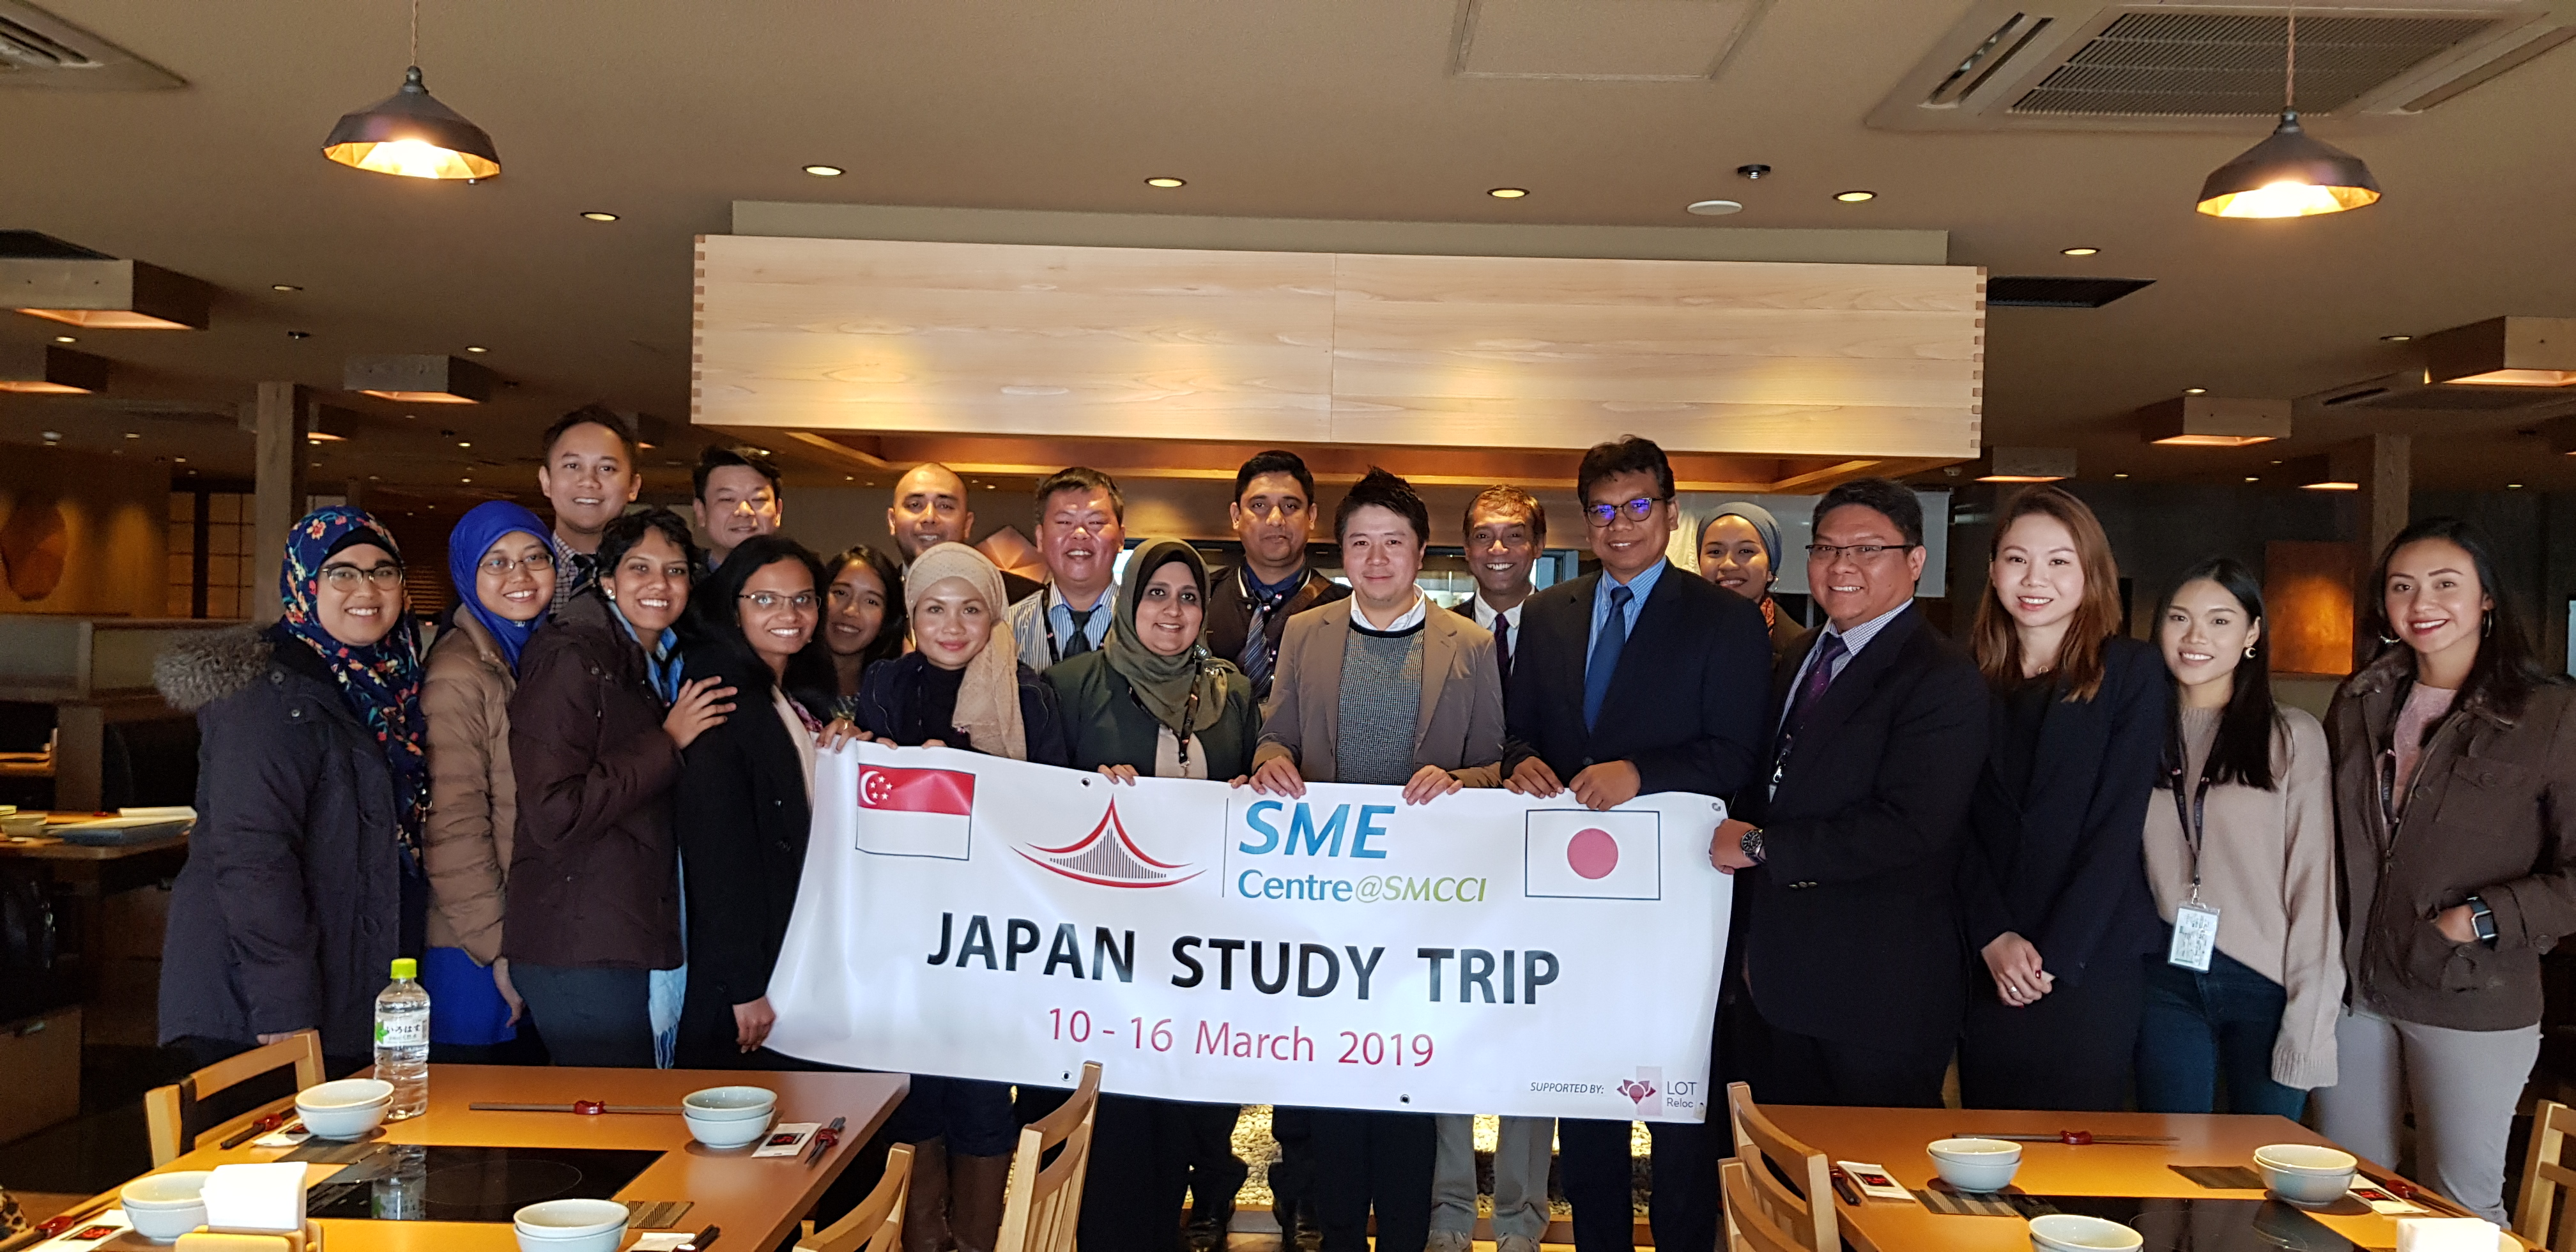 Learning Exploration for 19 officiers of the SME Center@SMCCI in Singapore to study the development of the Halal Market in Japan